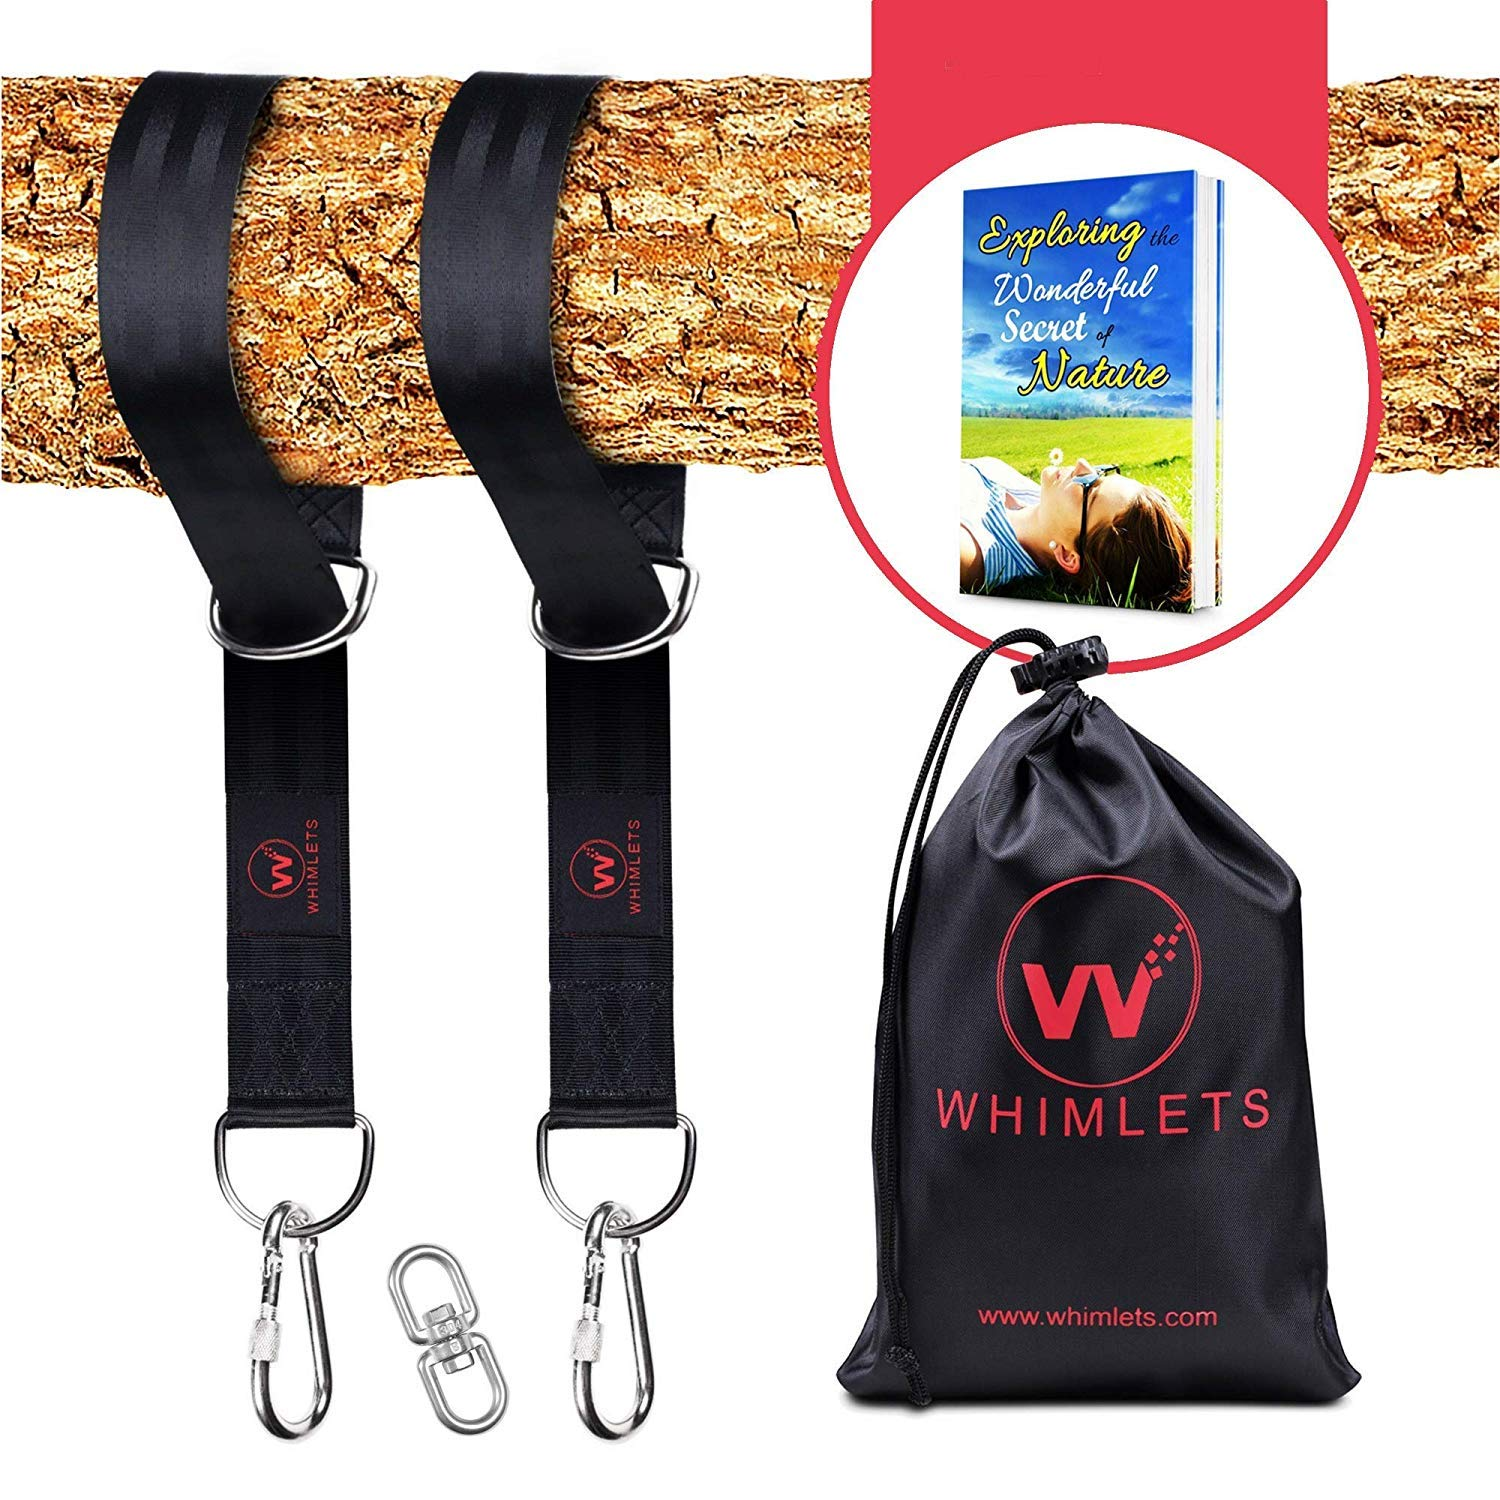 Whimlets Tree Swing Straps Hanging Kit - Two Straps Extra Long with Safer Lock Snap Carabiner Hooks - Perfect for Tree Swings & Hammocks - Easy and Fast Installation by Whimlets